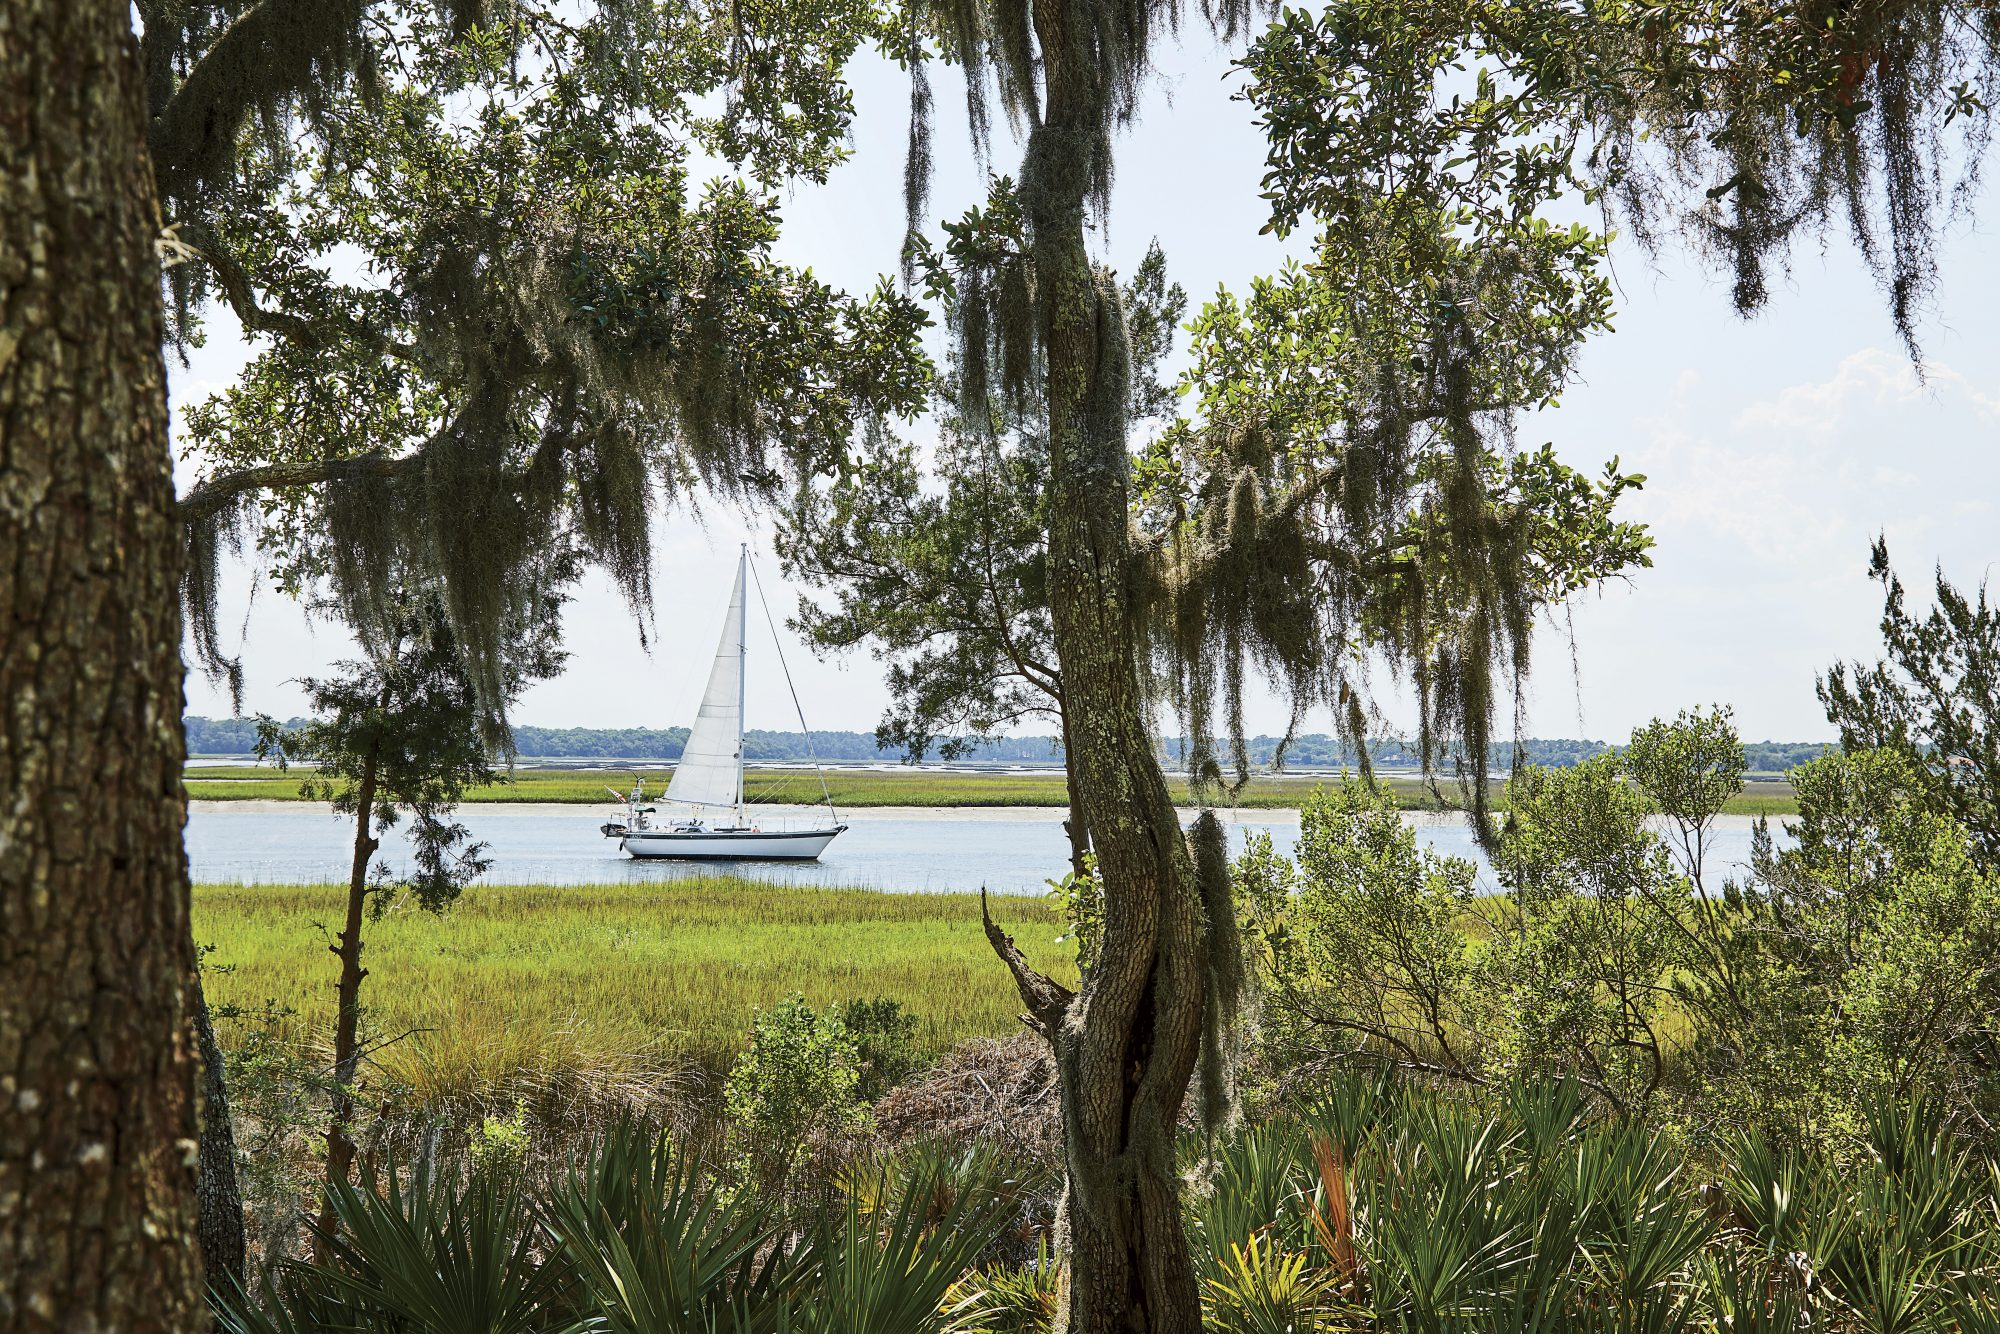 2019 Idea House in Crane Island, FL Water View with Sail Boat